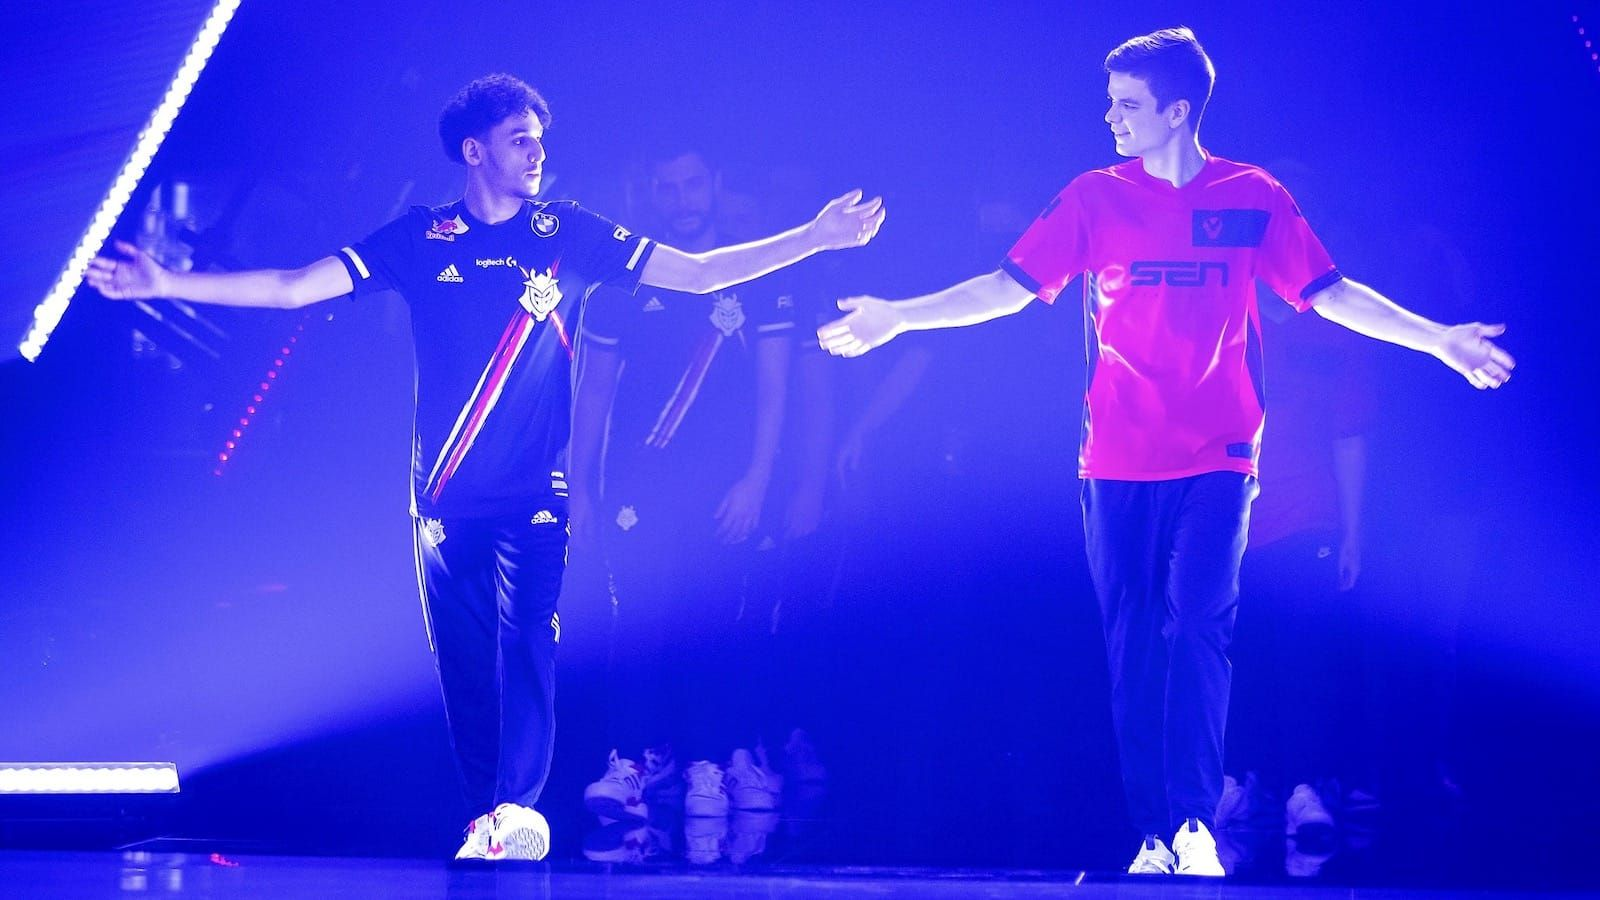 G2 player Keloqz and Sentinels player Sick walk out on stage with arms out